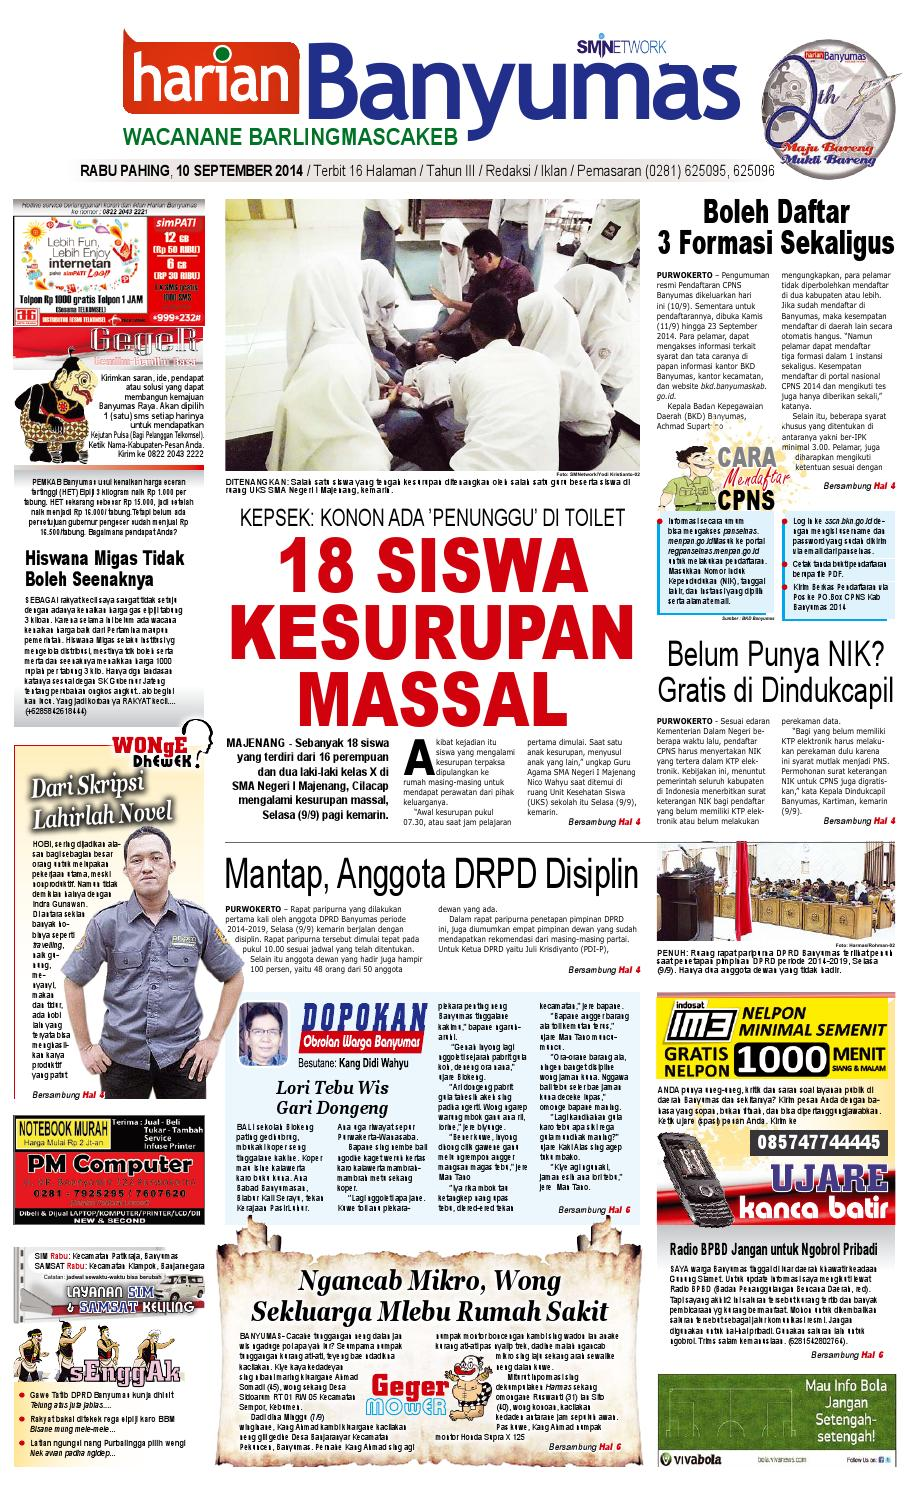 Harian Banyumas 10 September 2014 By Issuu Produk Umk Pnm Mangkuk Batik Uk 23 Cm